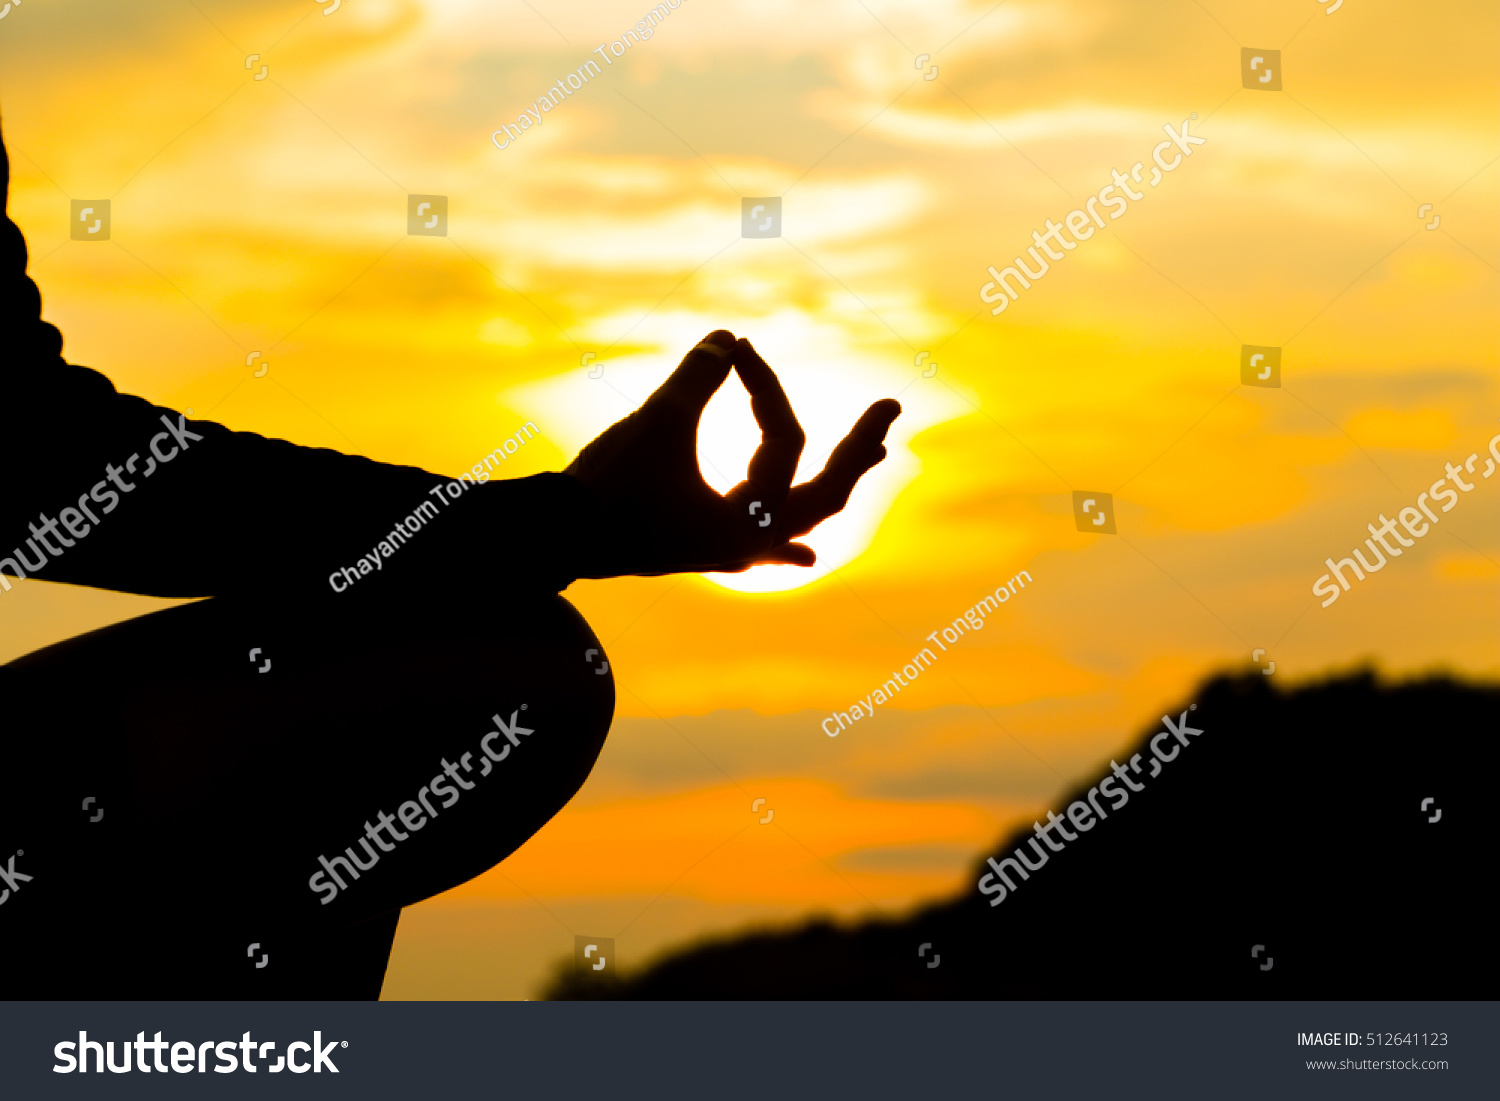 Silhouette Hand Of Woman Meditating In Yoga Pose Or Lotus Position By The Sea At